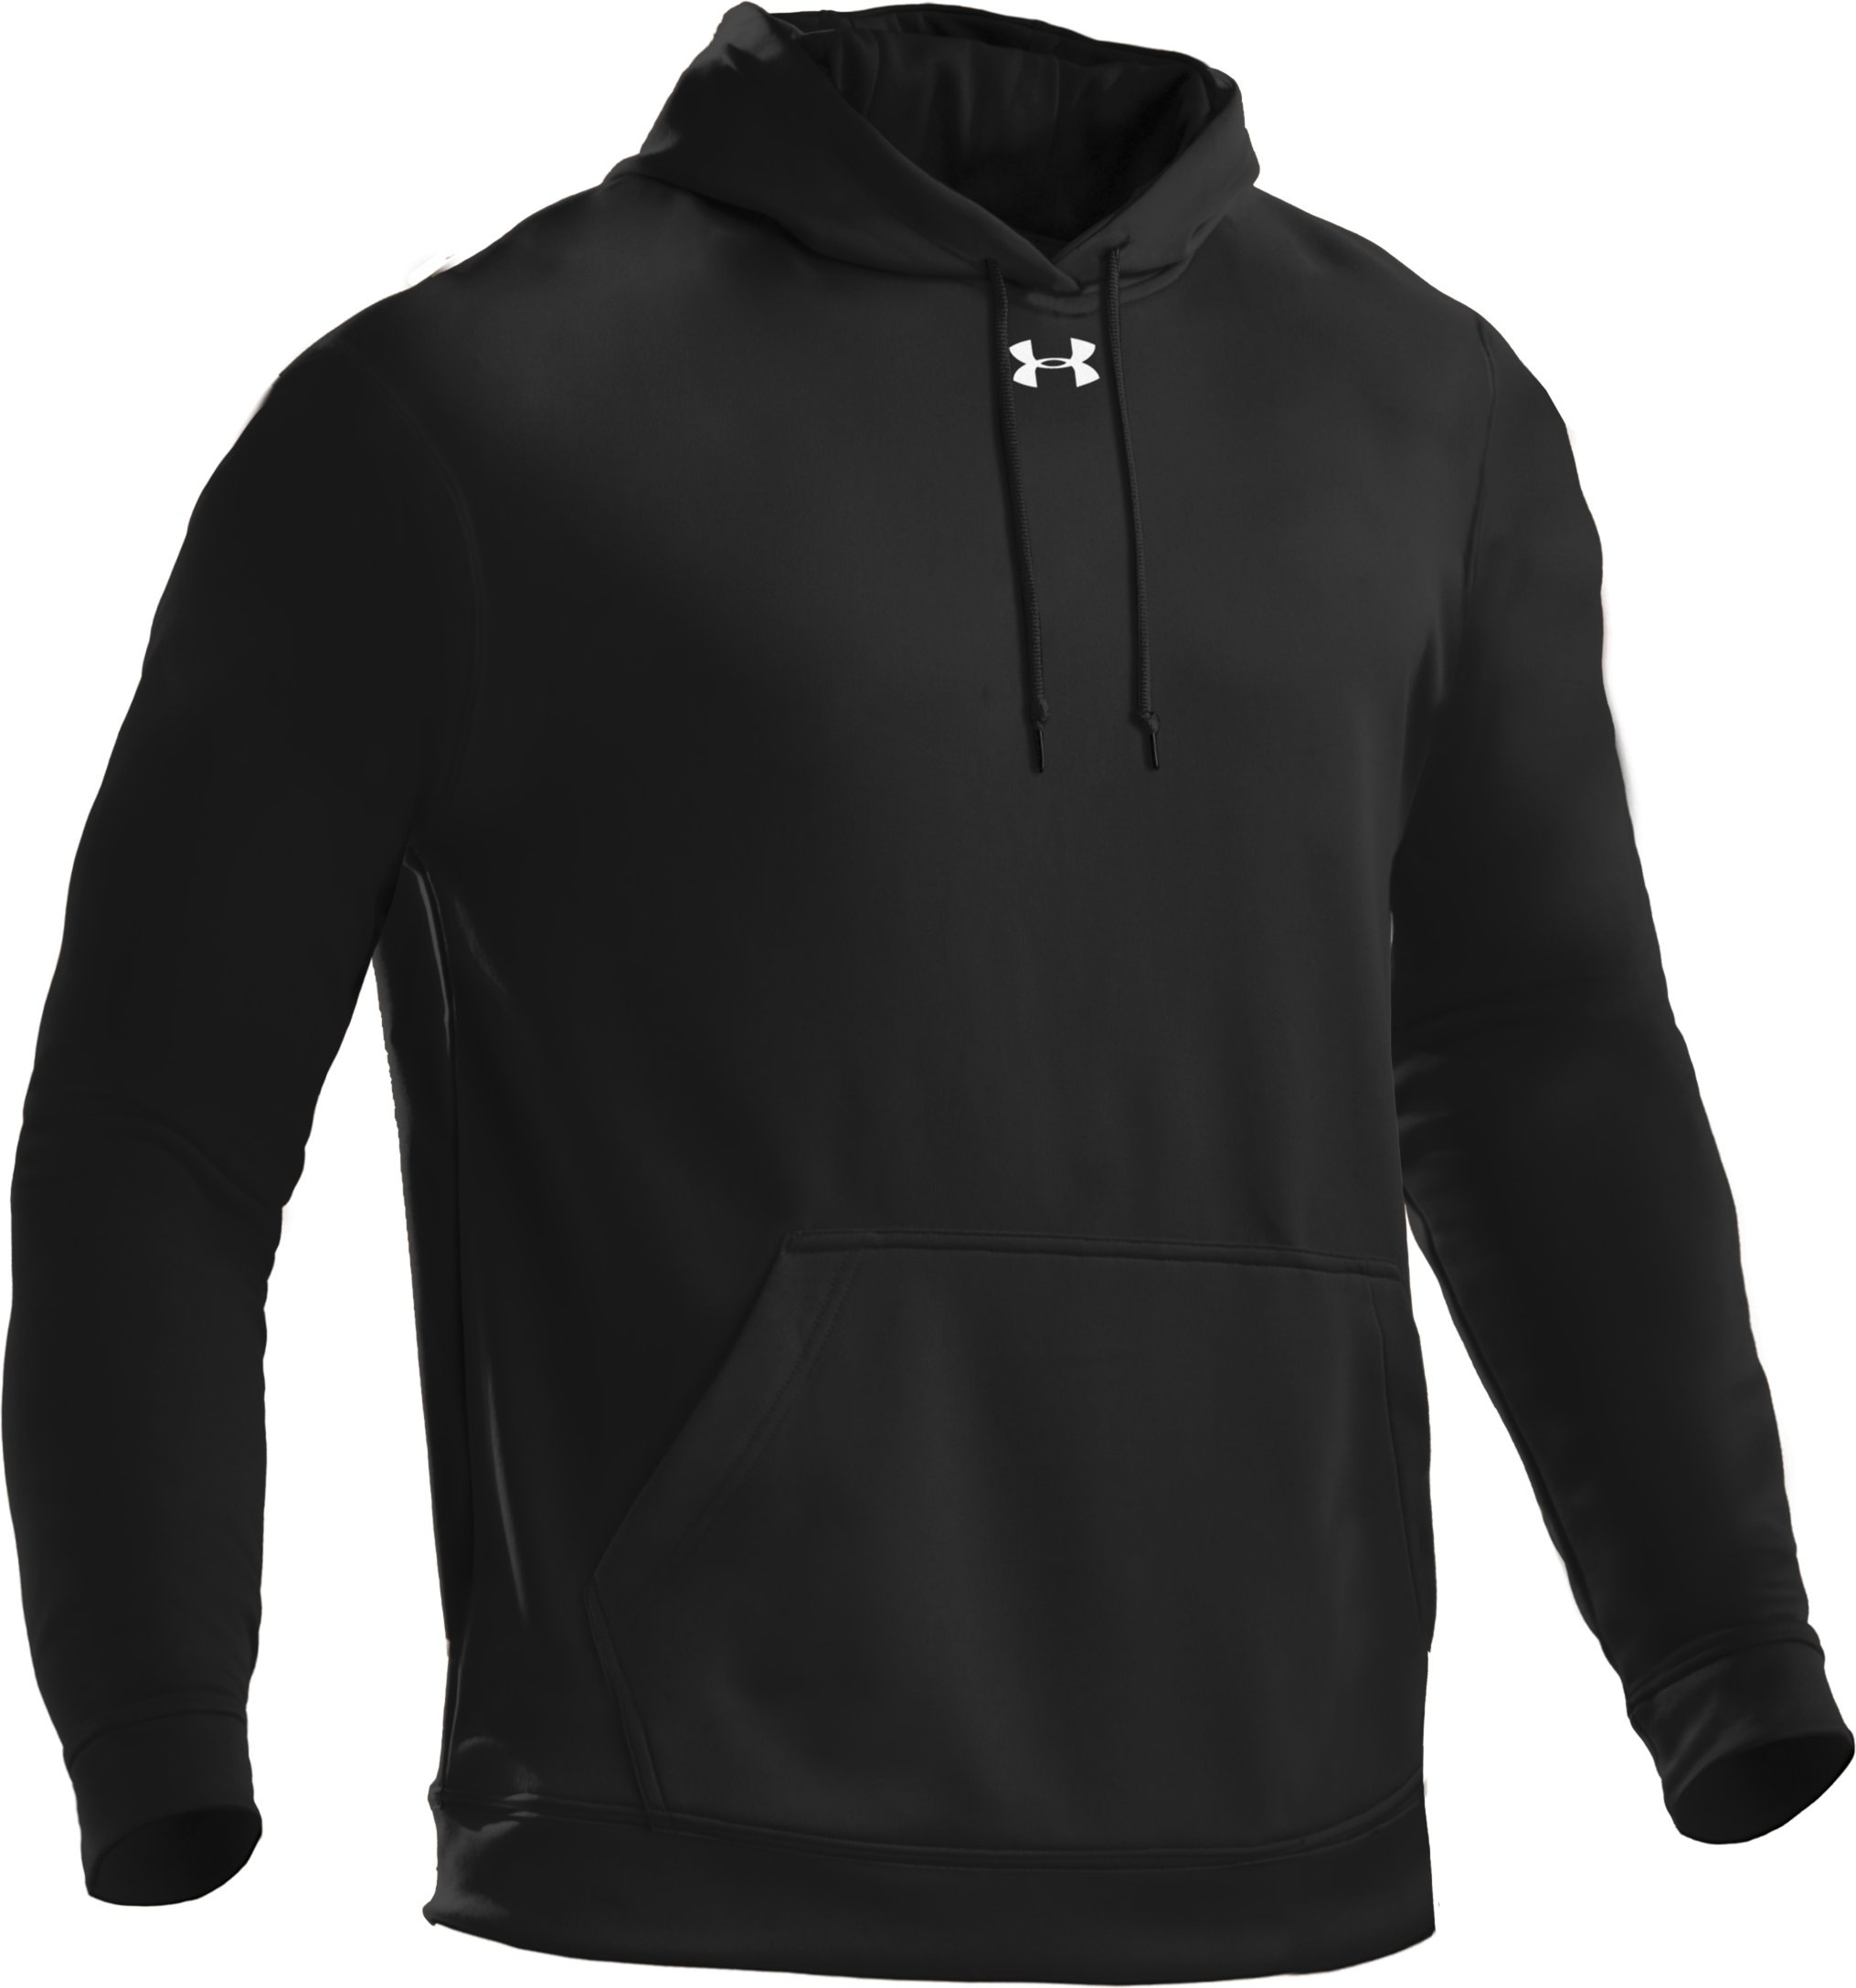 Men's Armour® Fleece Team Hoodie, Black